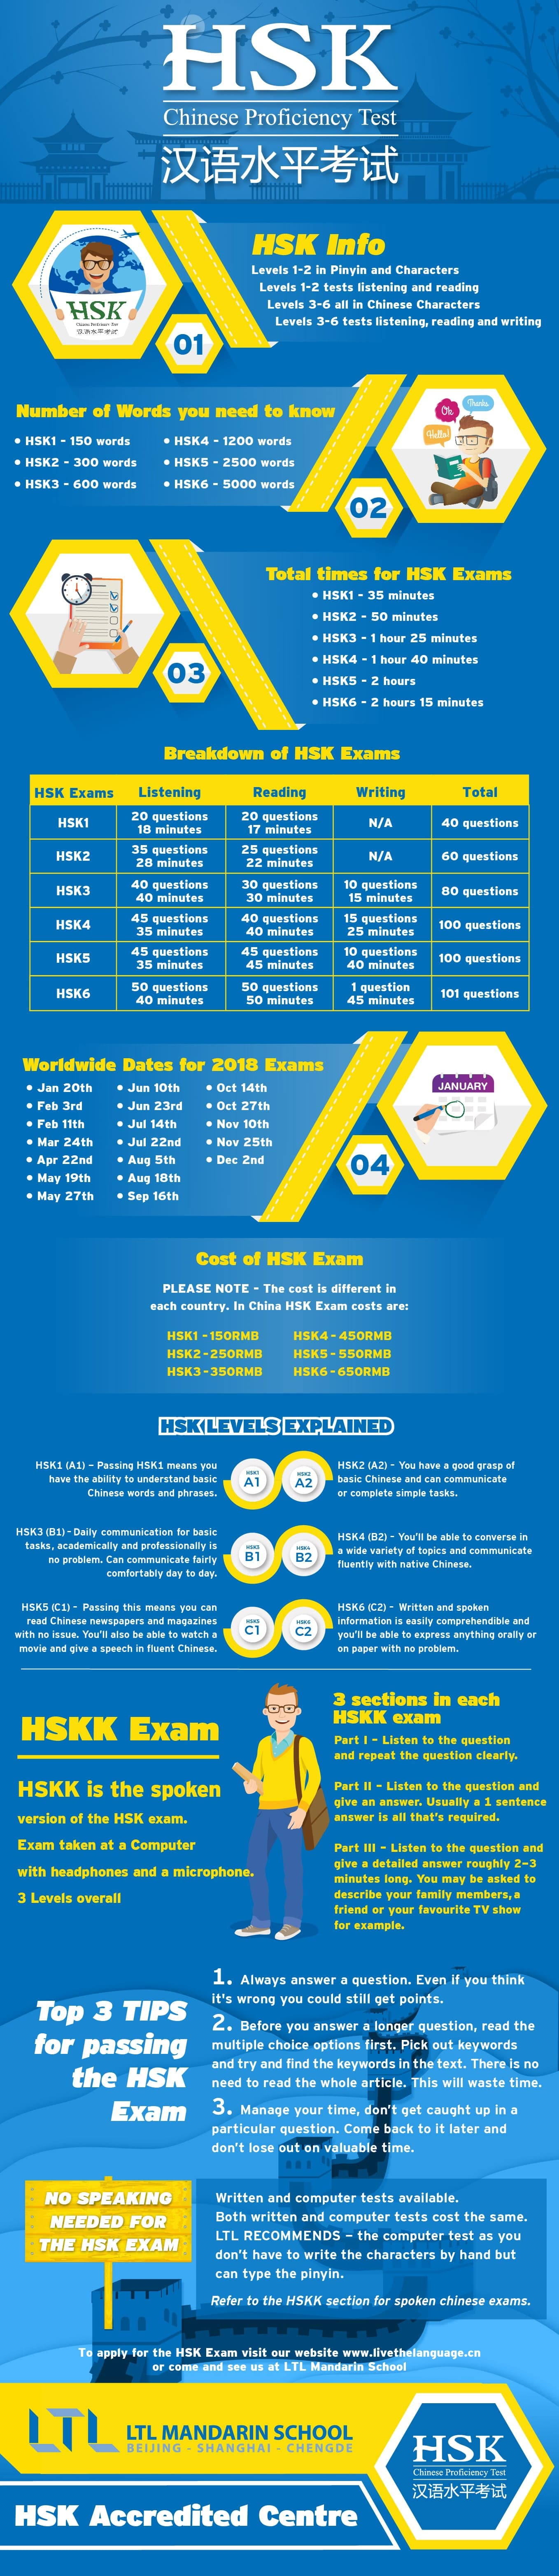 HSK Exam Guide - The Official Details On HSK Dates, Prices